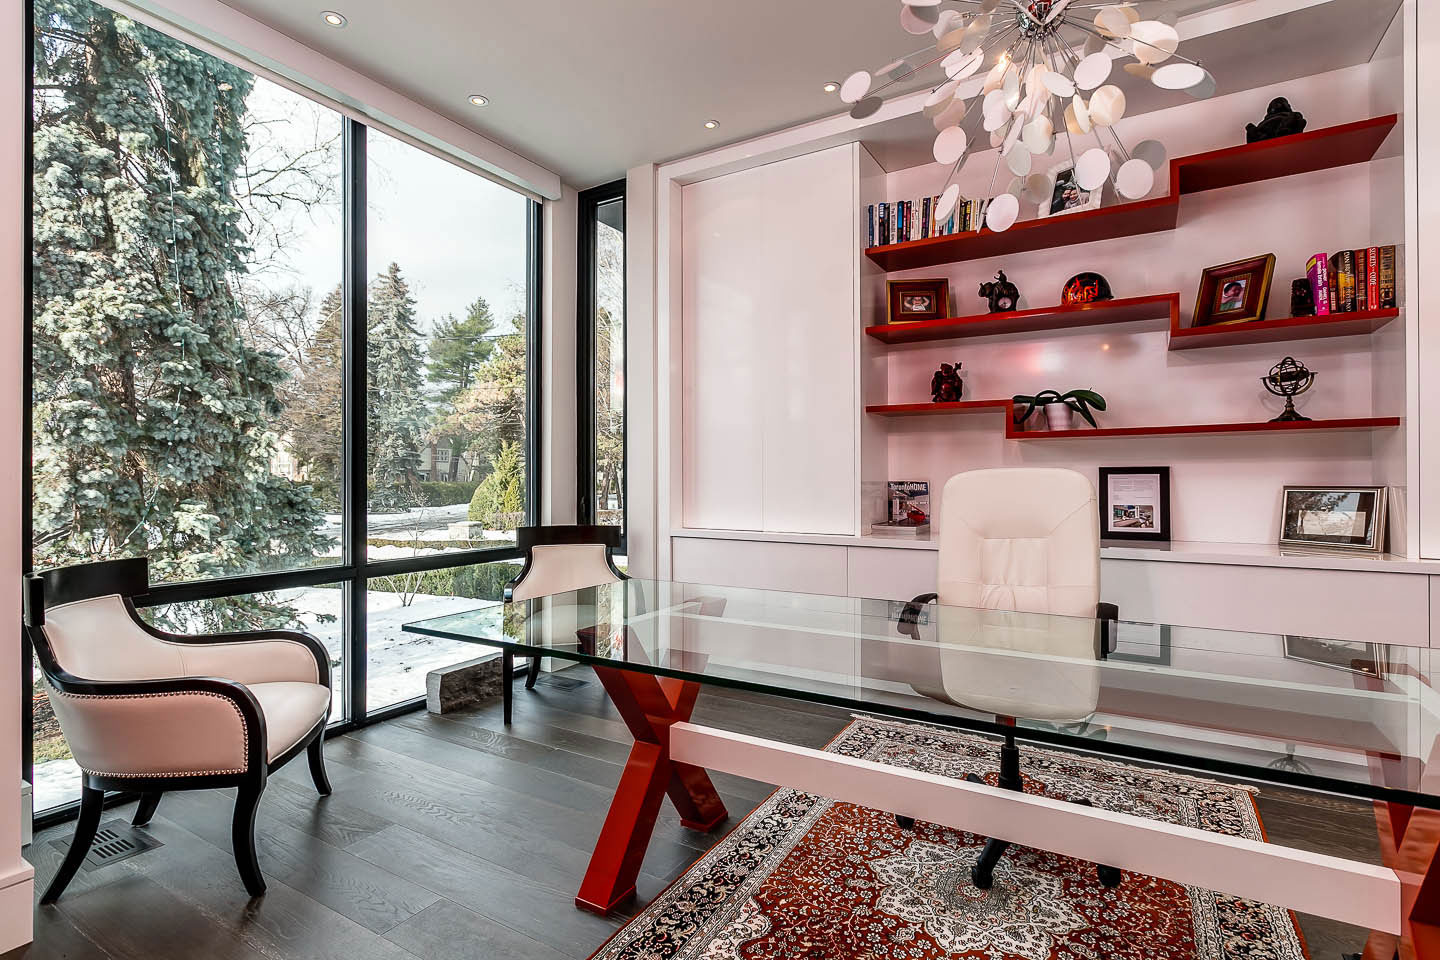 Home Office, Contemporary House in Toronto, Canada